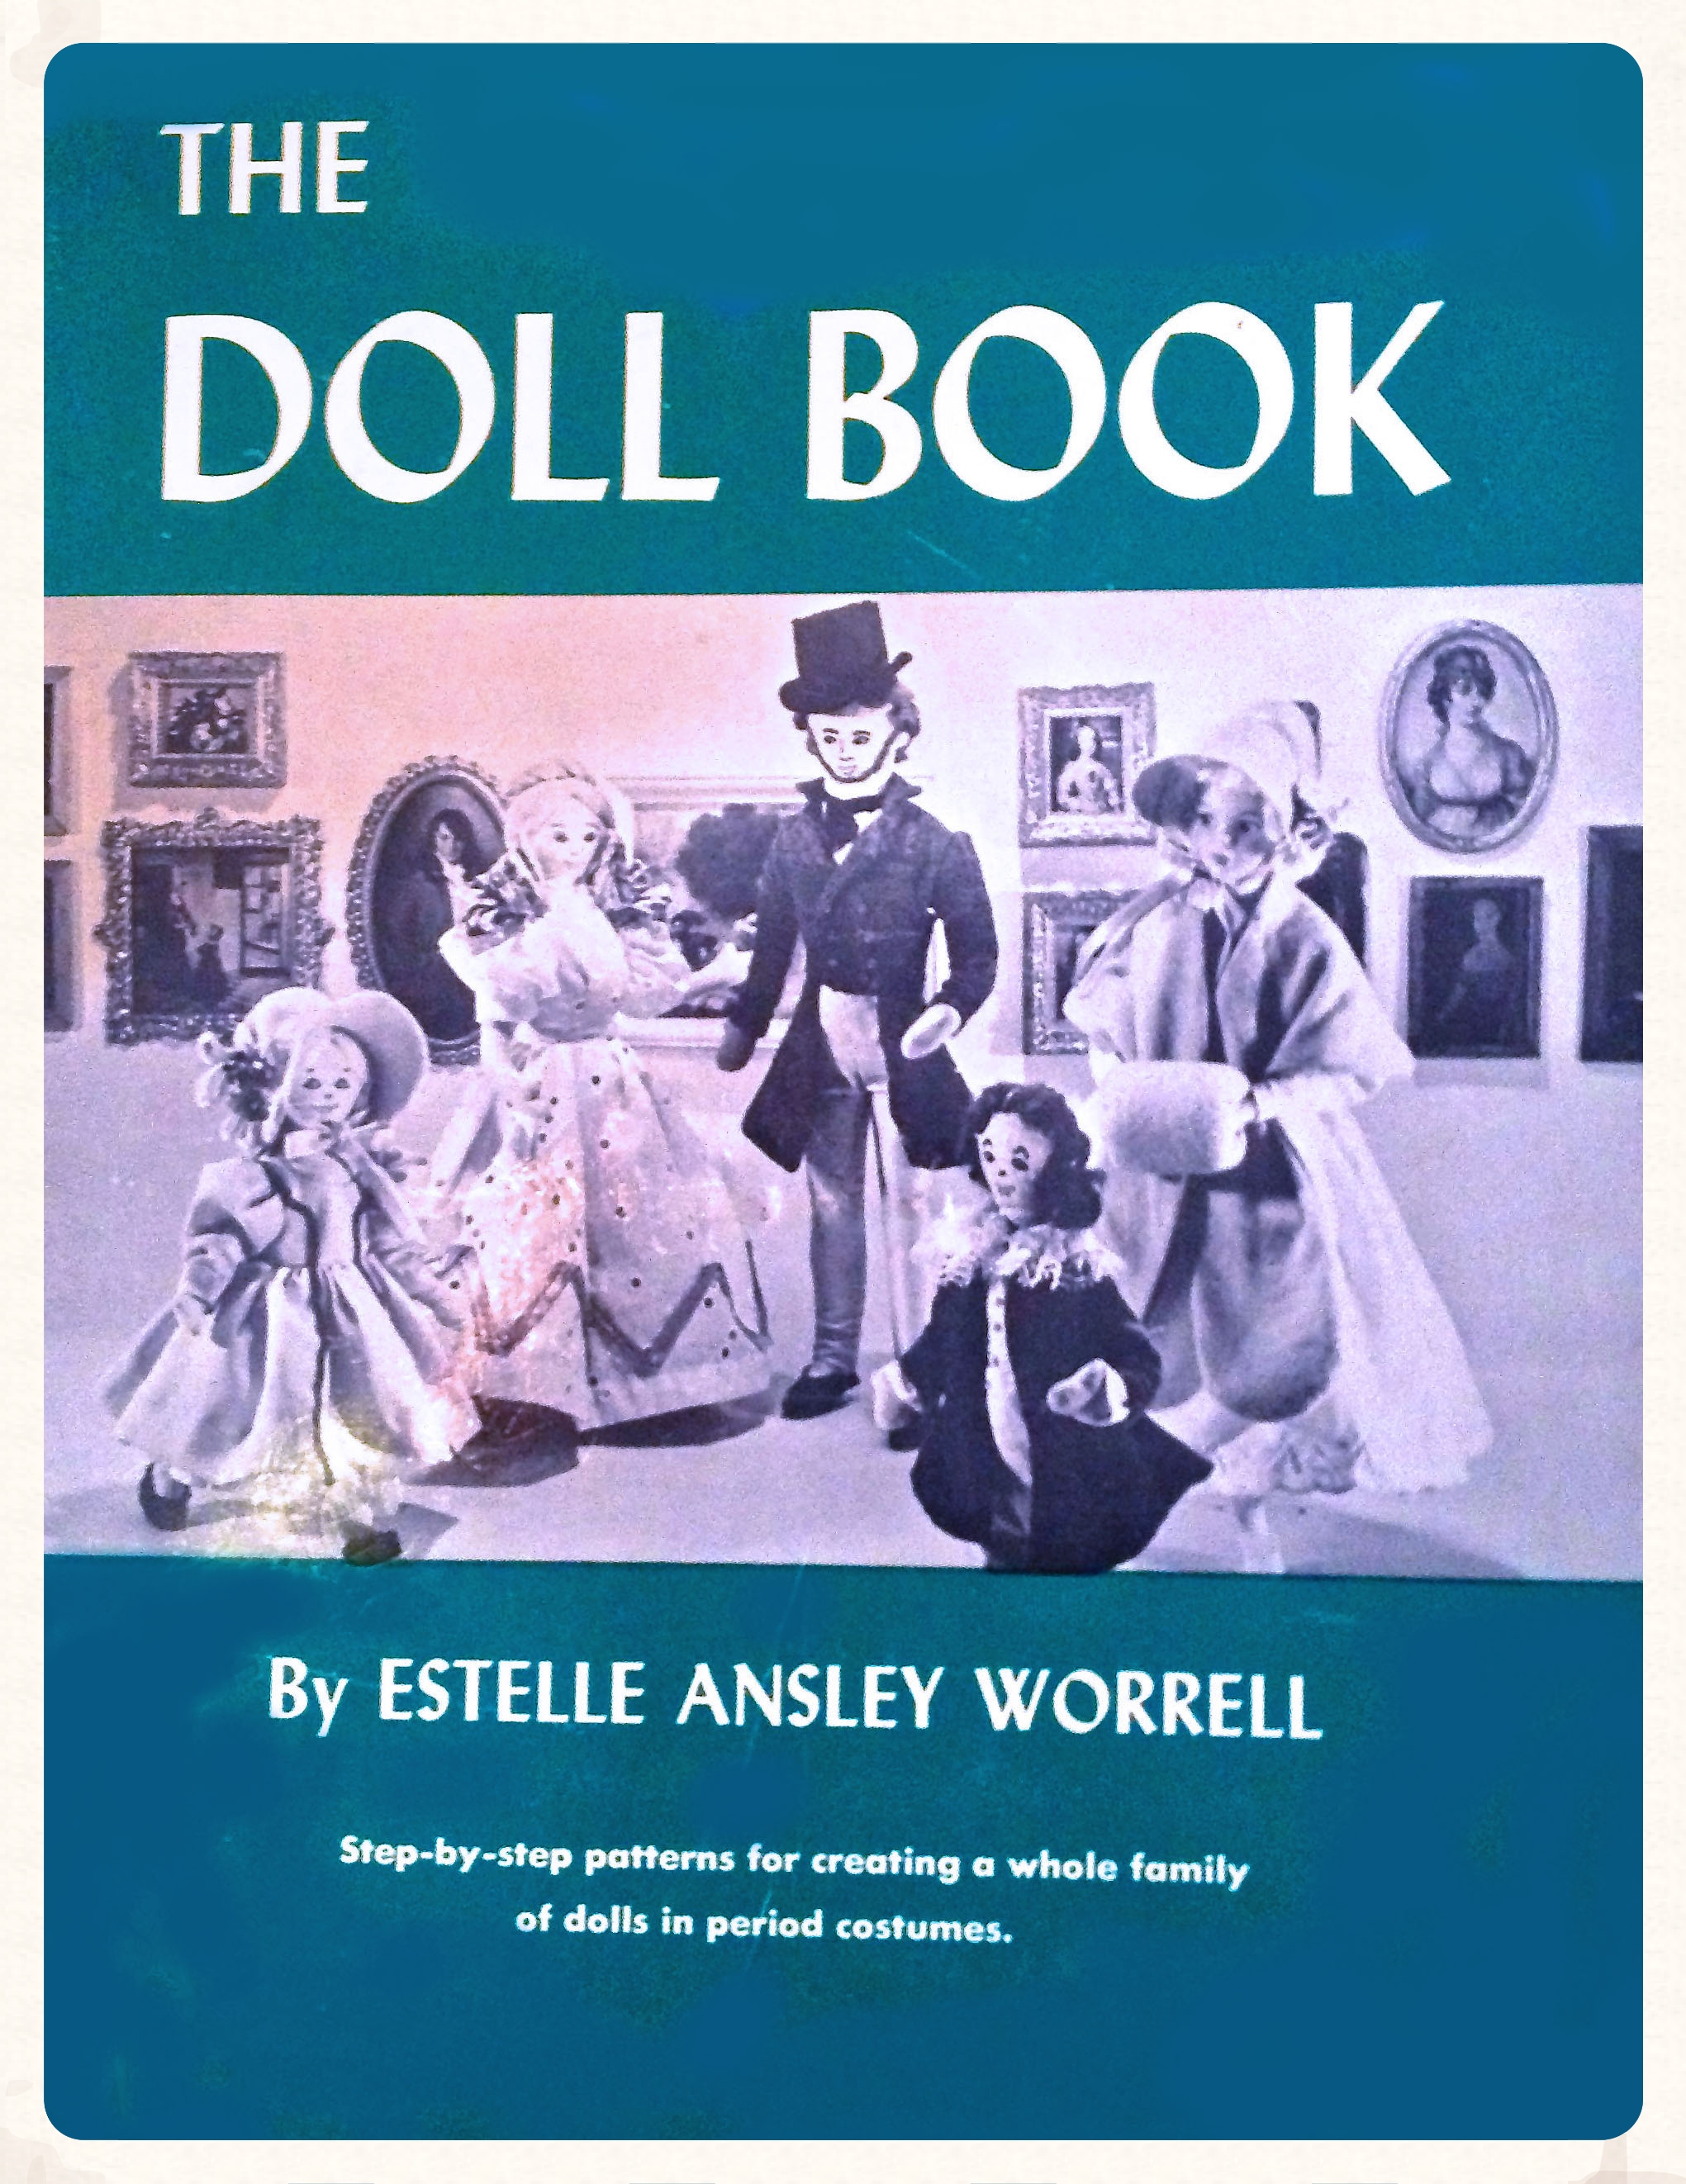 The Doll Book1 cover.jpg